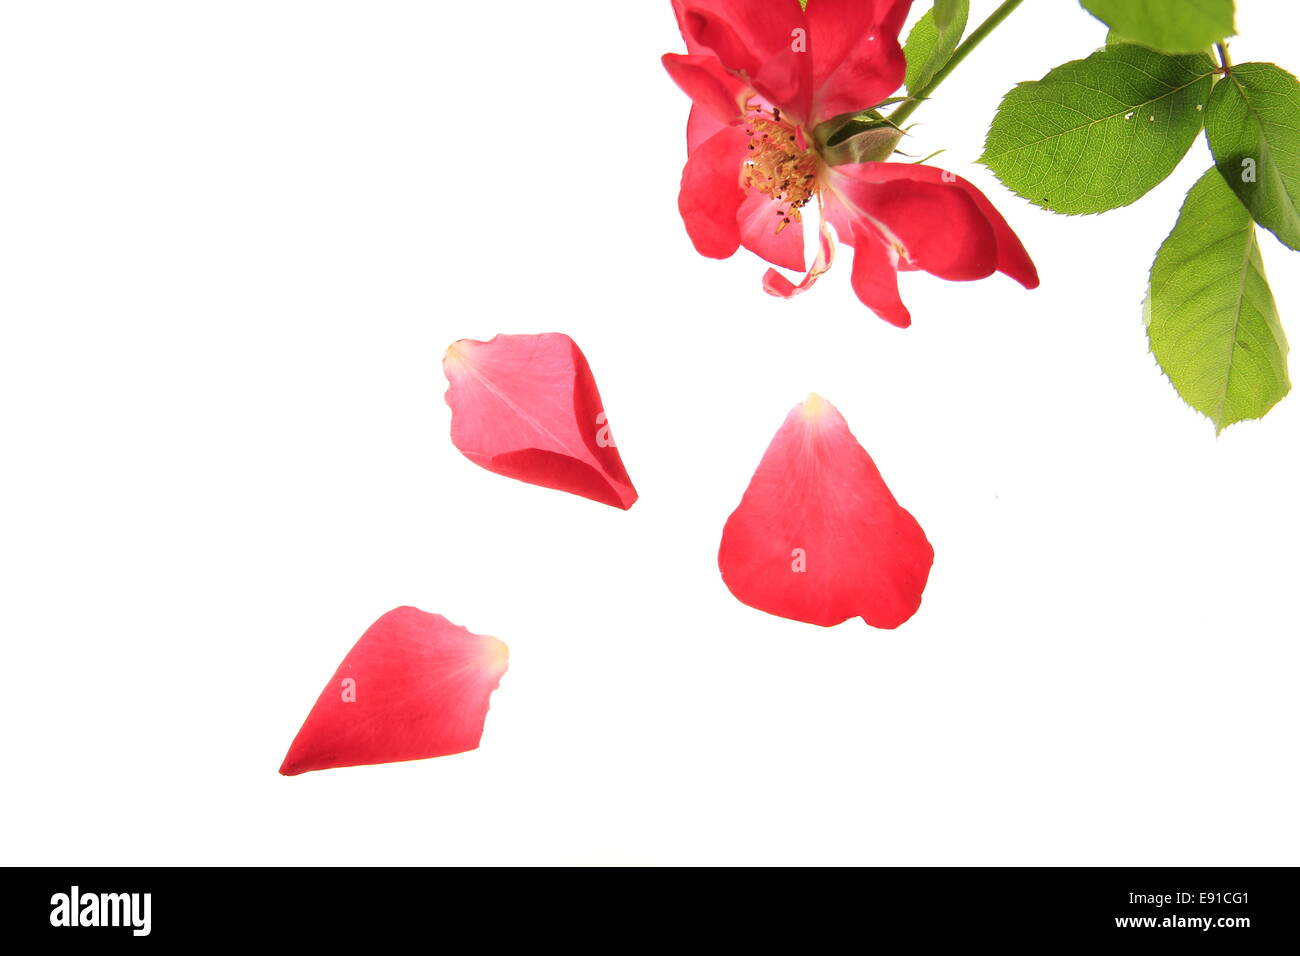 red rose with falling petals - Stock Image